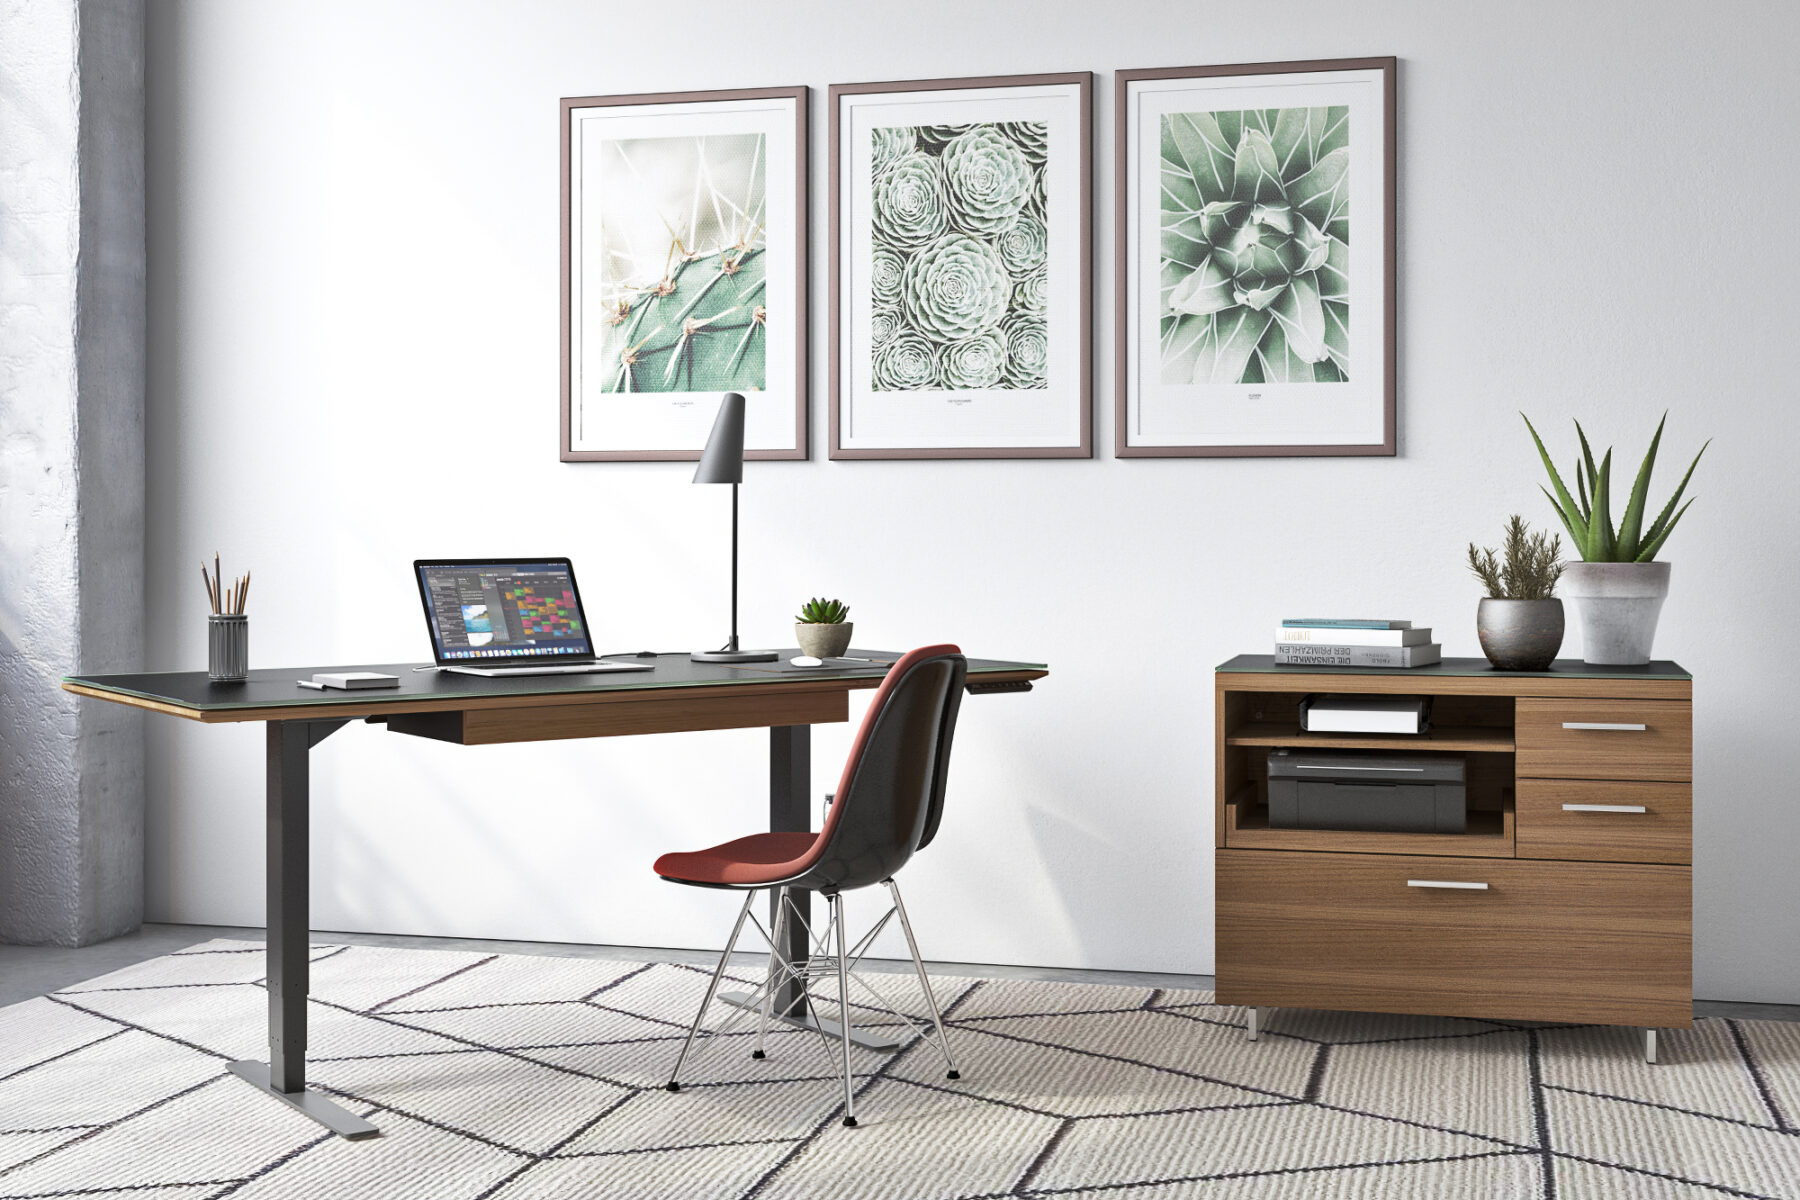 sequel-lift-desk-6152-6159-6117-wl-modern-standing-desk-5